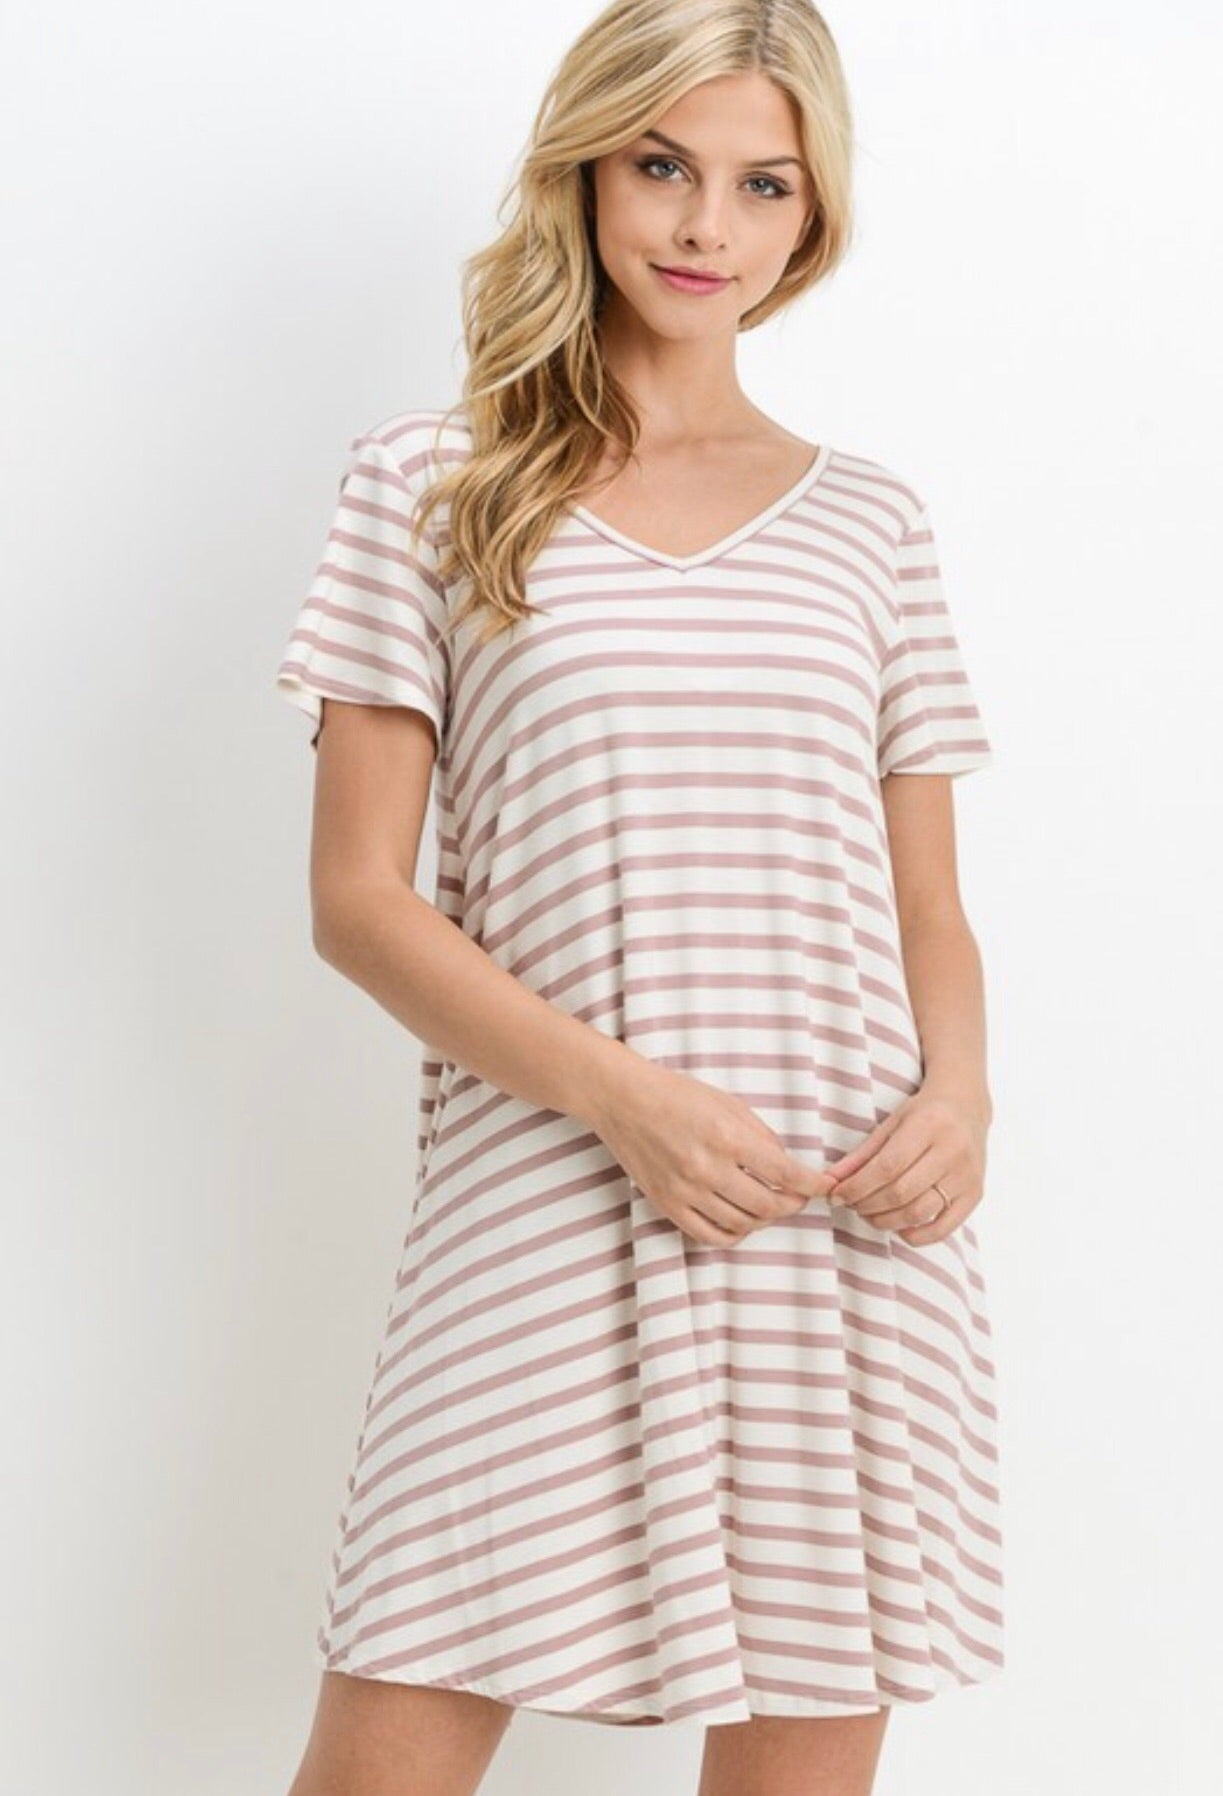 THE CASSIE DRESS - BLUSH